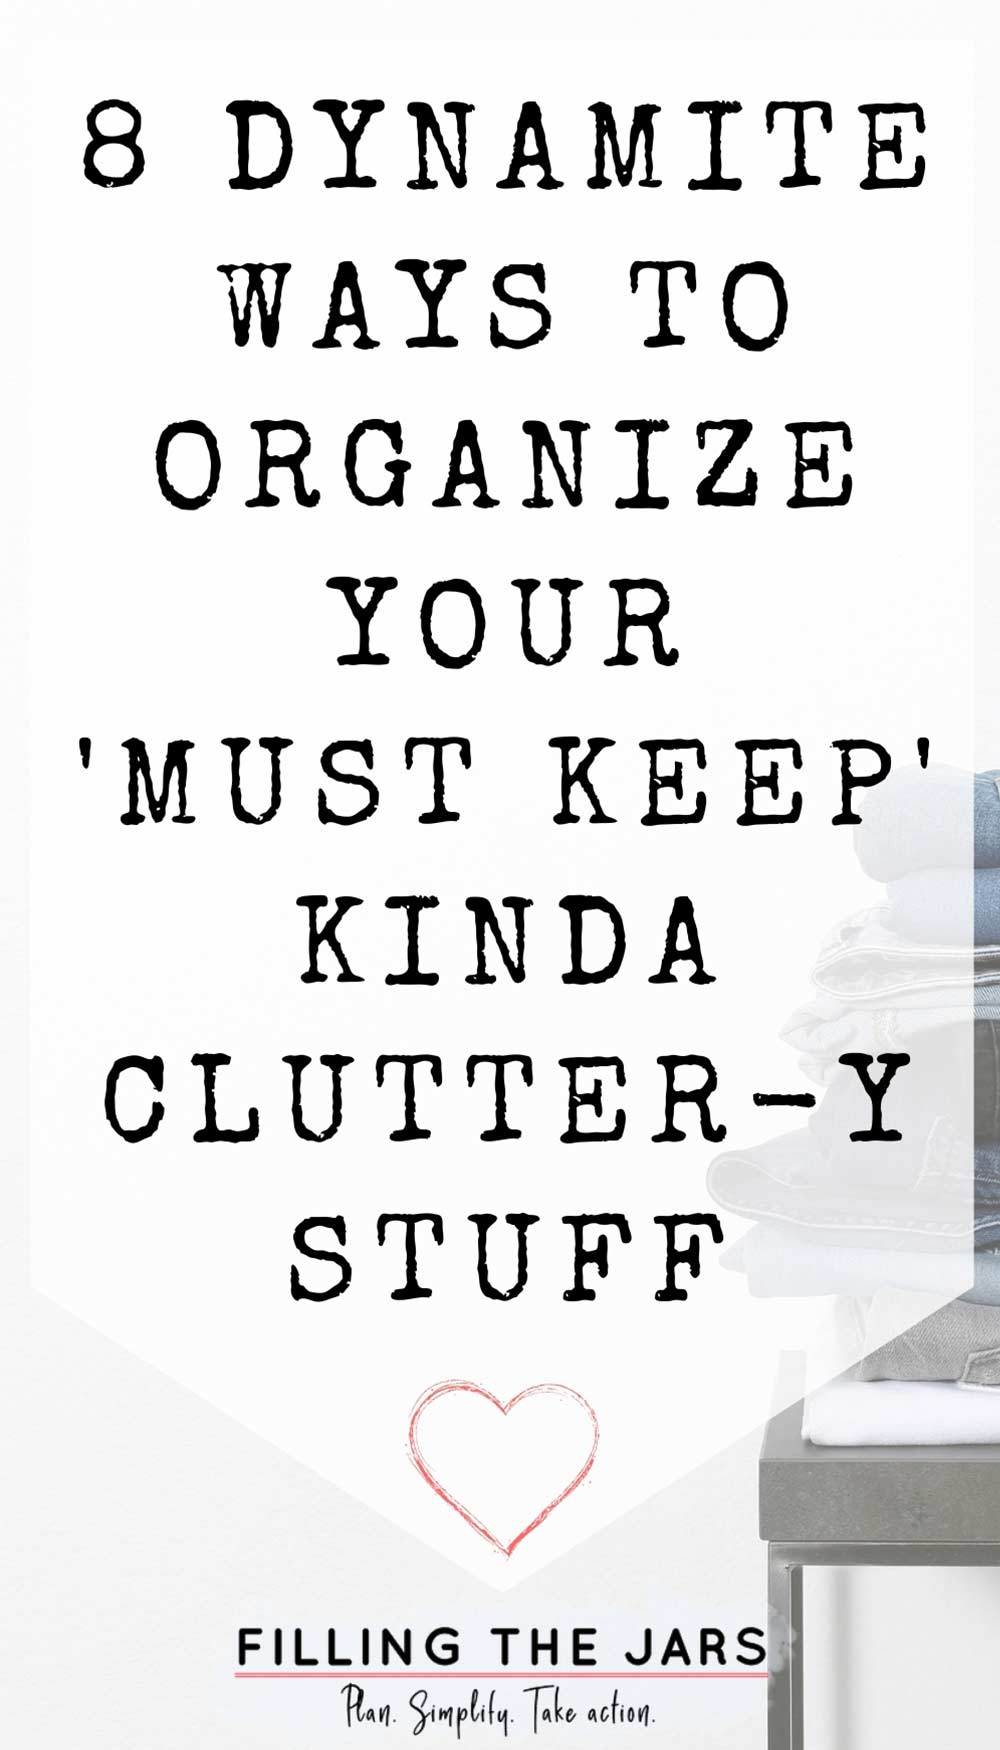 Text ways to organize your clutter on white background over image of pile of folded jeans on stool against white wall.